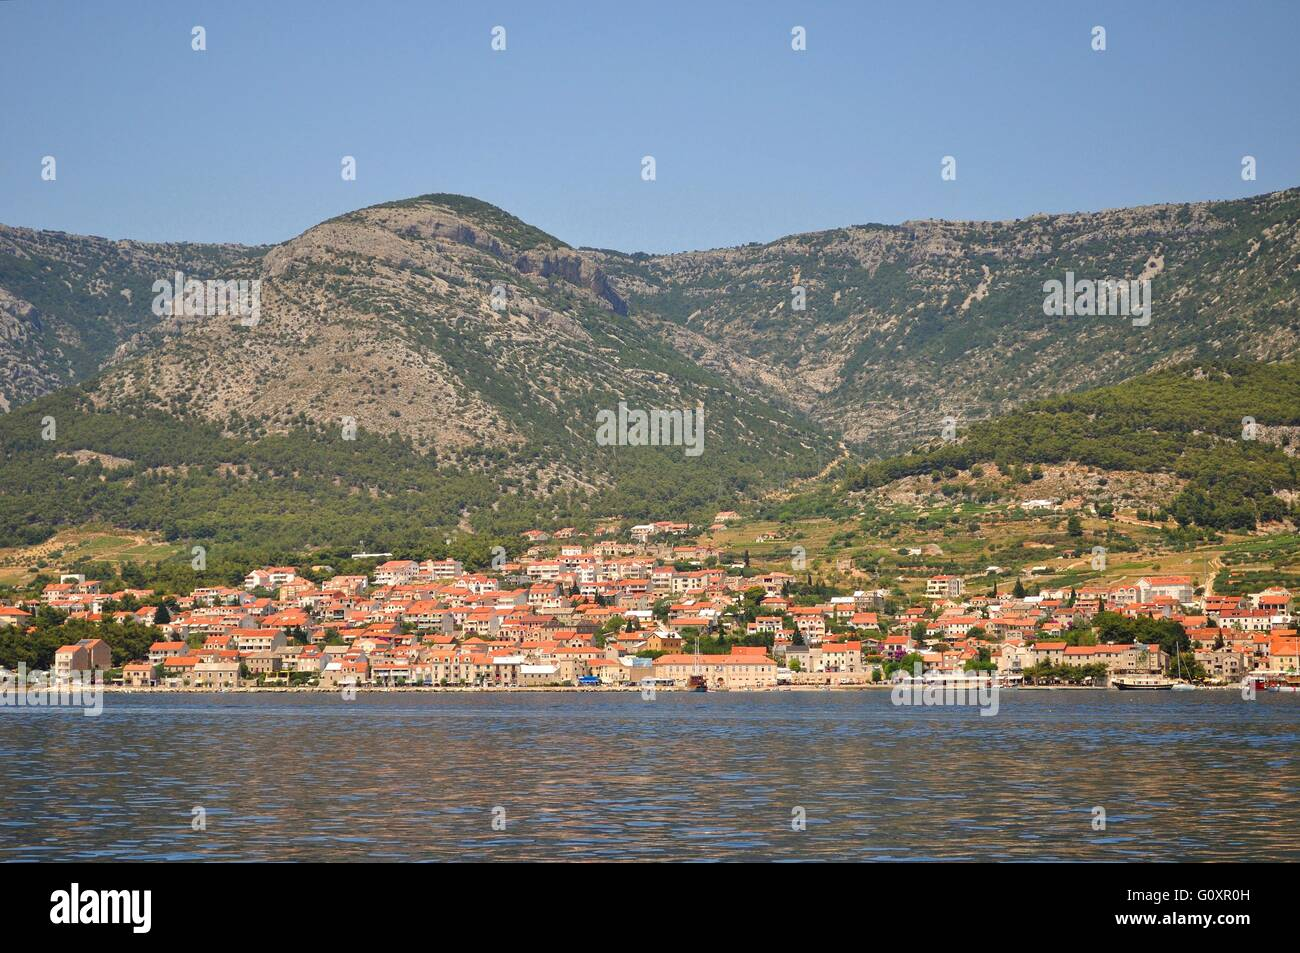 Bol is a town on the south of the island of Brac in the Split-Dalmatia County of Croatia. - Stock Image